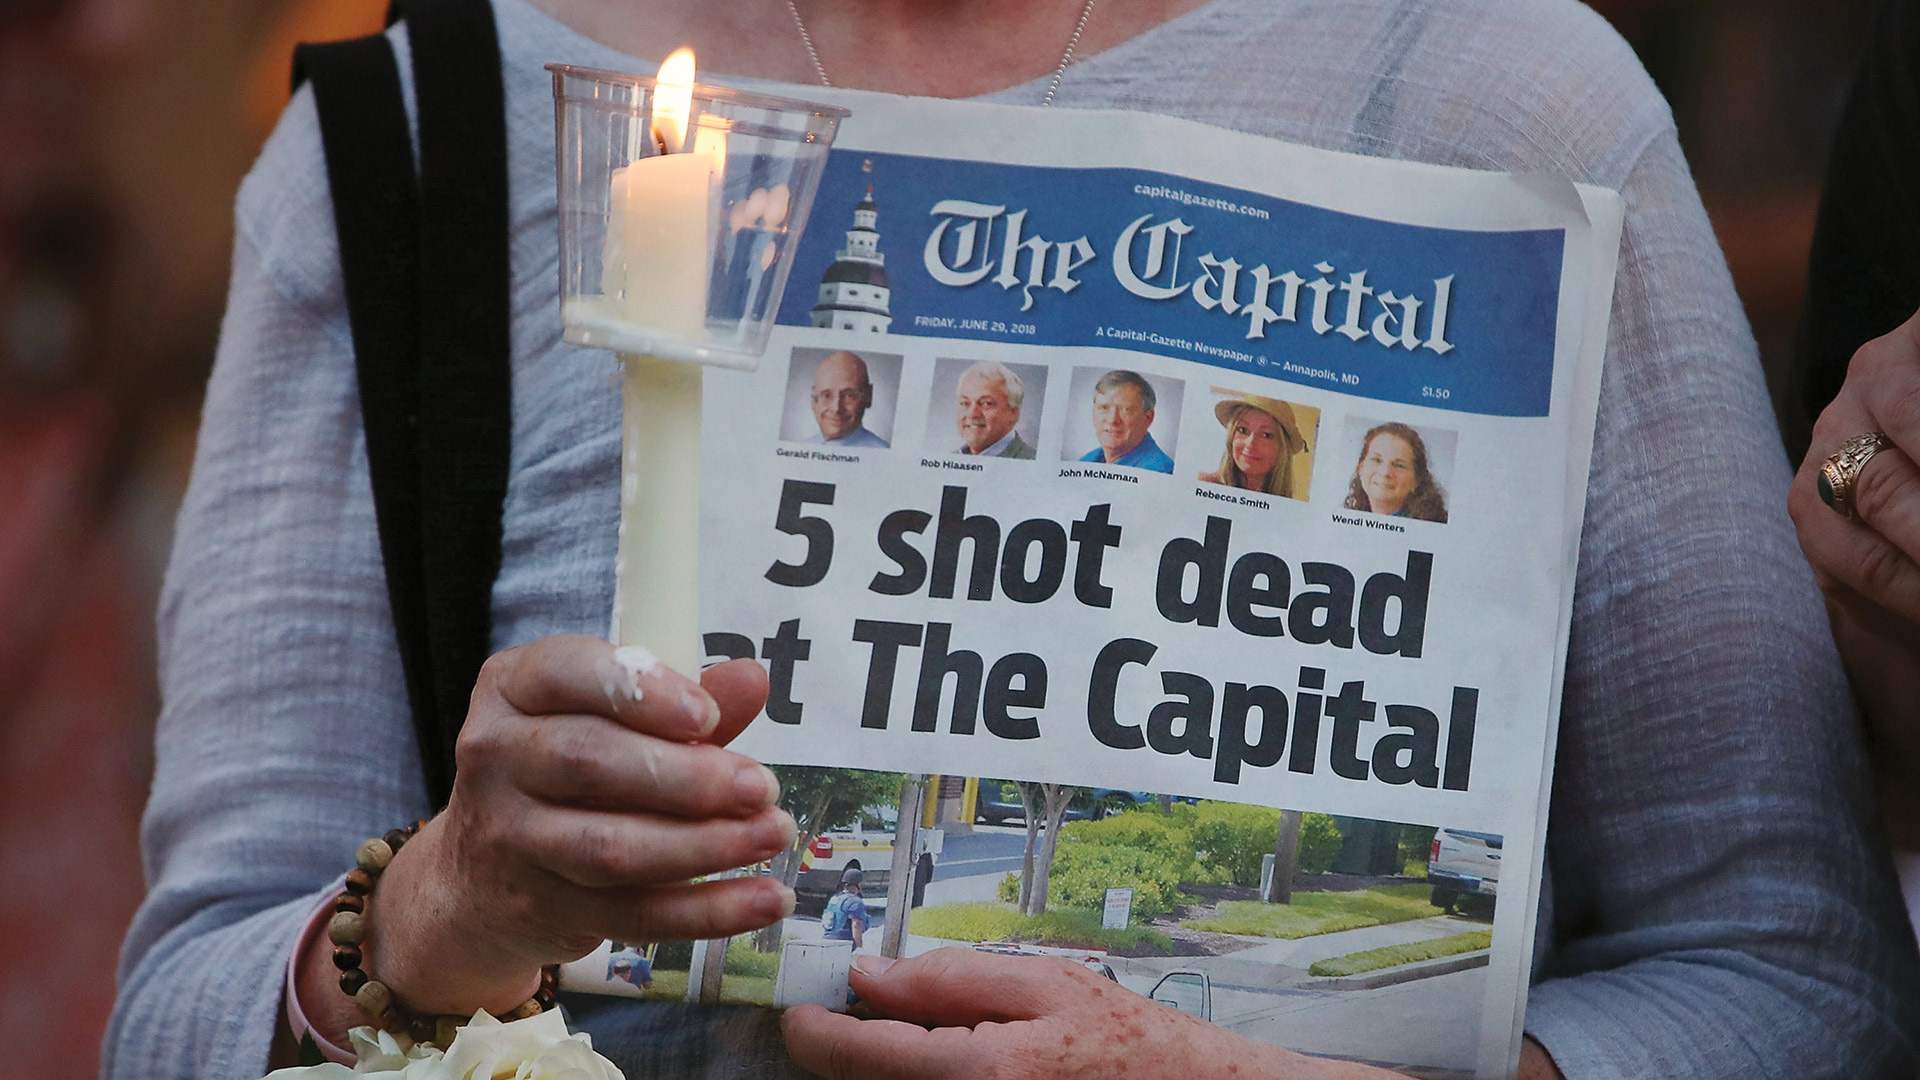 UMD to Memorialize Capital Gazette Shooting Victims